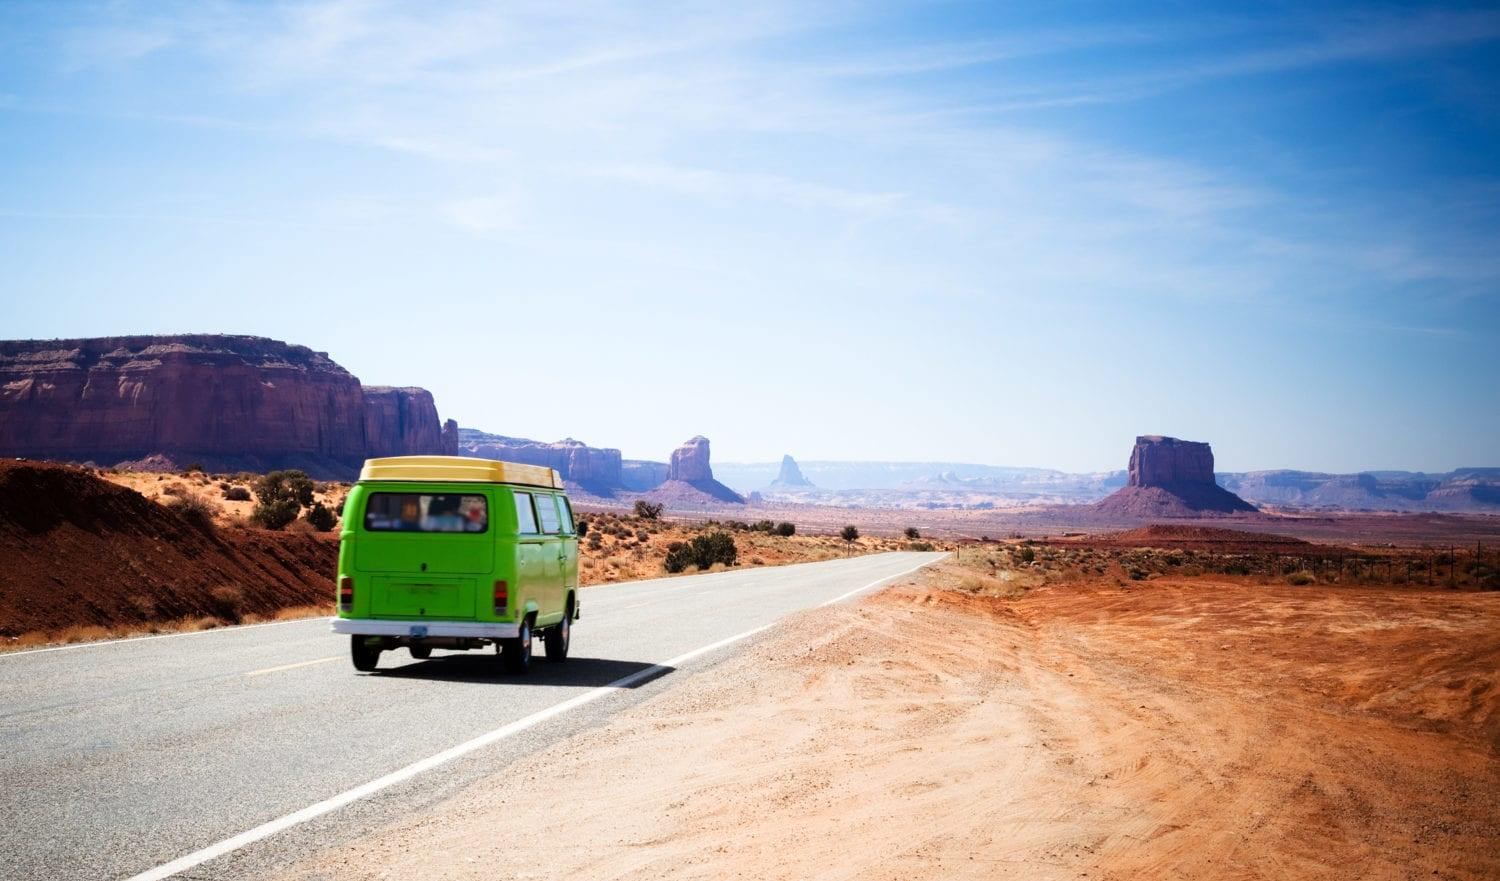 Green van driving on the Highway 163 in the Monument Valley between Utah and Arizona during a bright blue day. Car in motion.